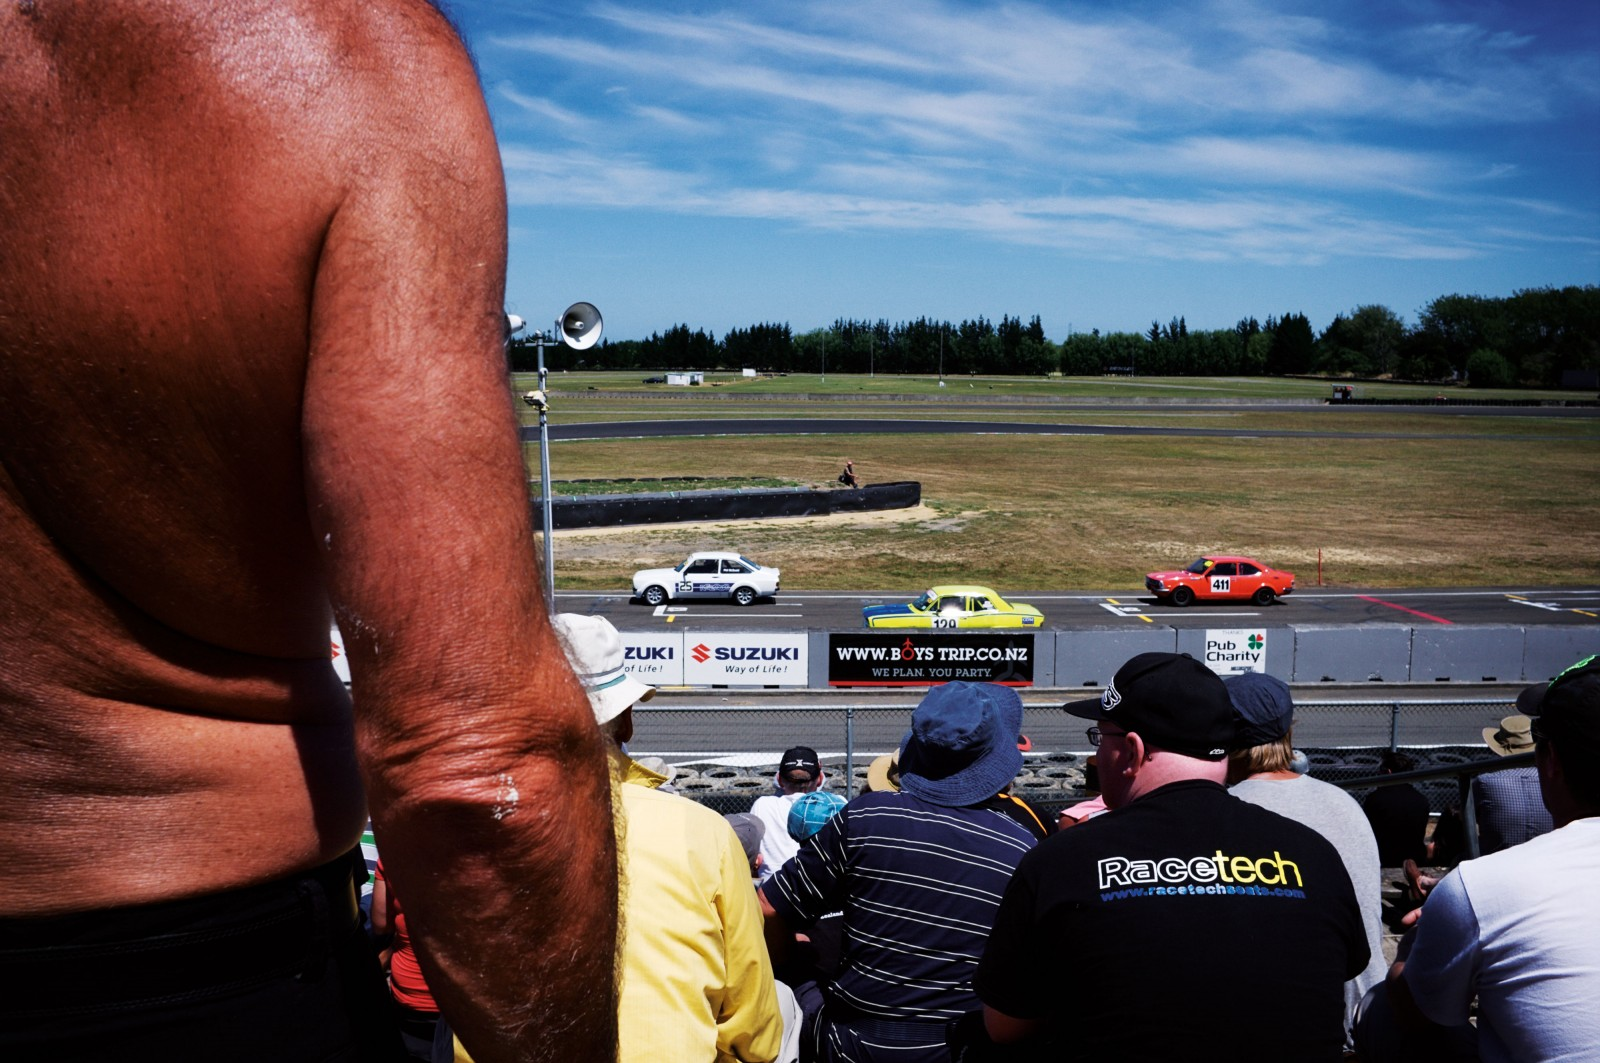 The New Zealand Grand Prix has been raced since 1950—one of only two grand prix races in the world outside the Formula 1 banner—and is now the signature race of the Toyota Racing Series. Sunday racing at Manfeild, Feilding, draws the biggest crowds, and includes races in other classes—from the entry-level Formula Ford to the NZV8 Championship—that precede the main event.